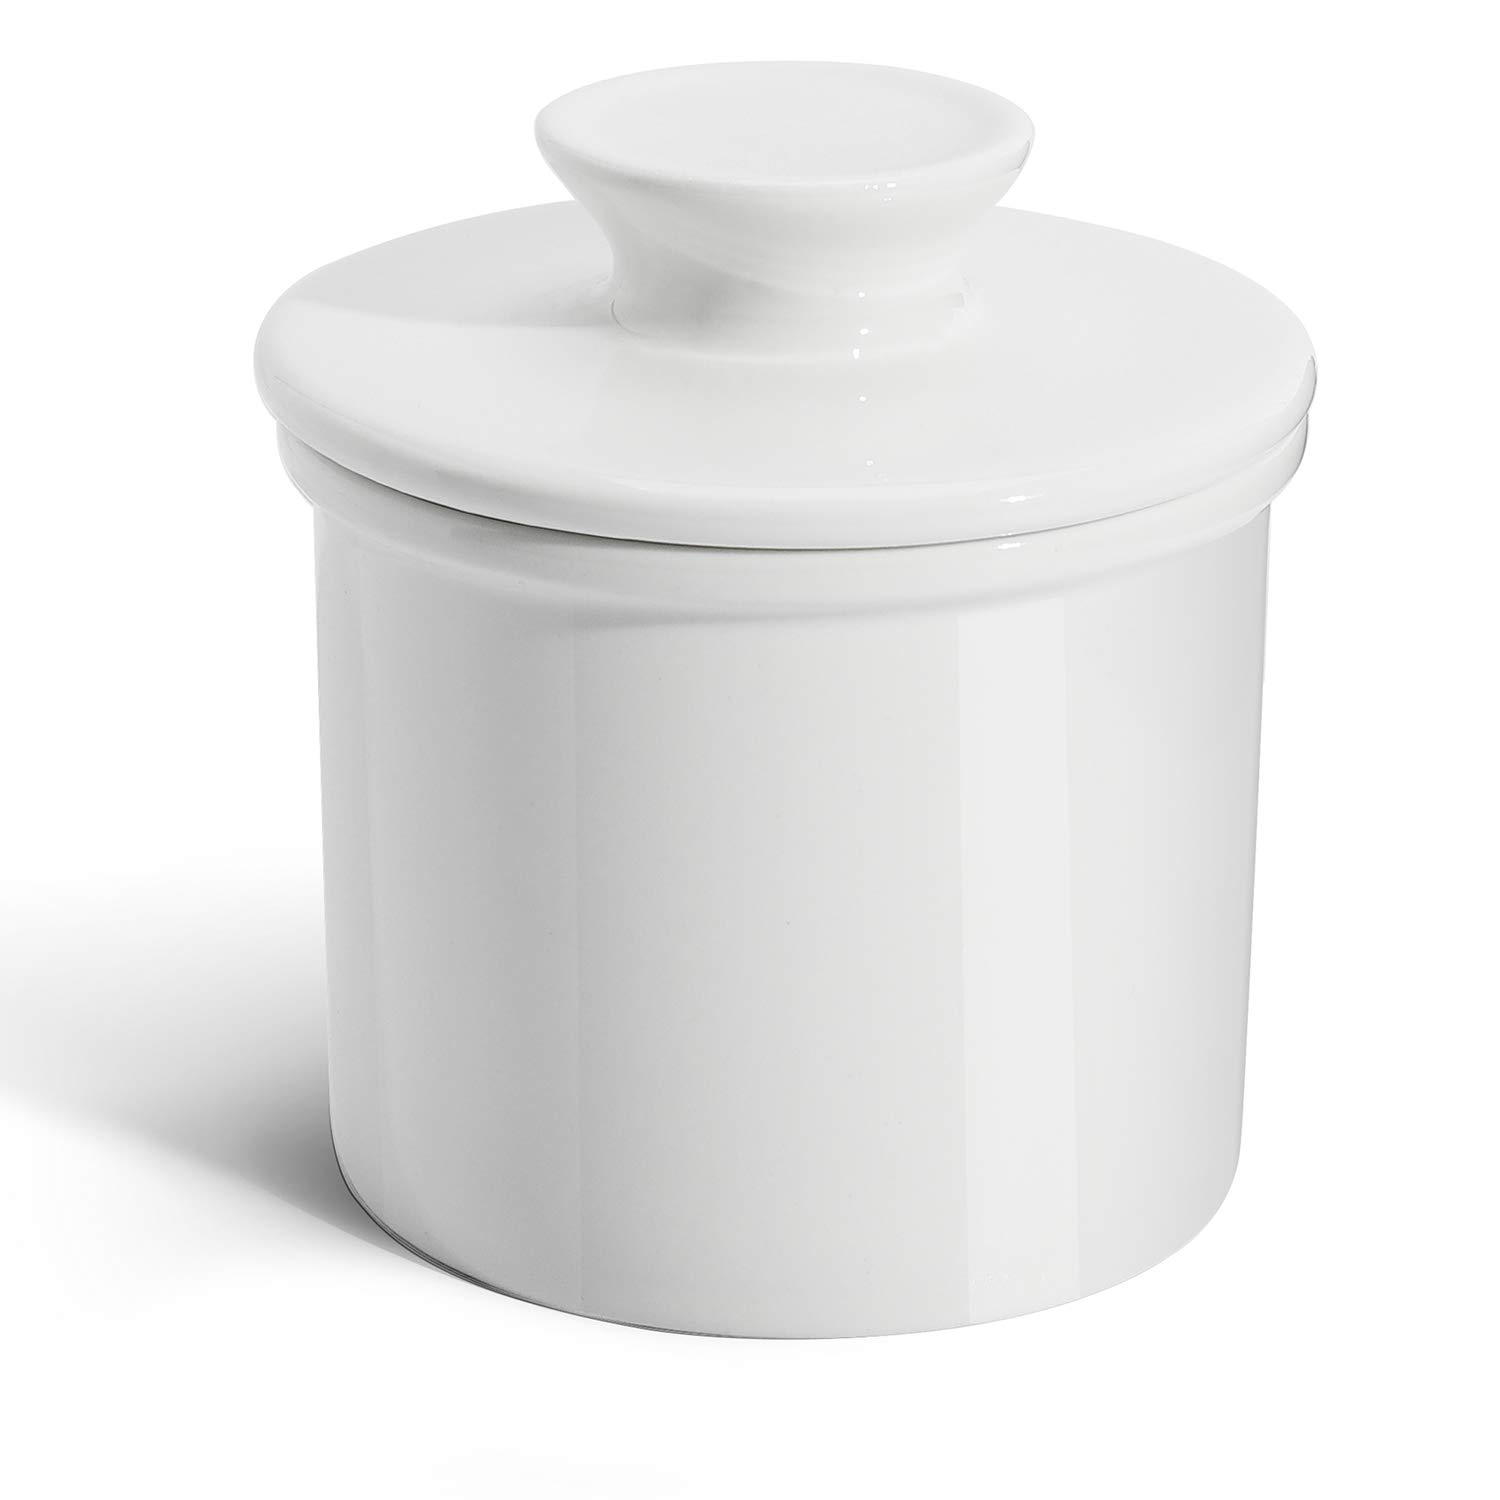 Sweese 3110 Porcelain Butter Keeper Crock - French Butter Dish - No More Hard Butter - Perfect Spreadable Consistency, White